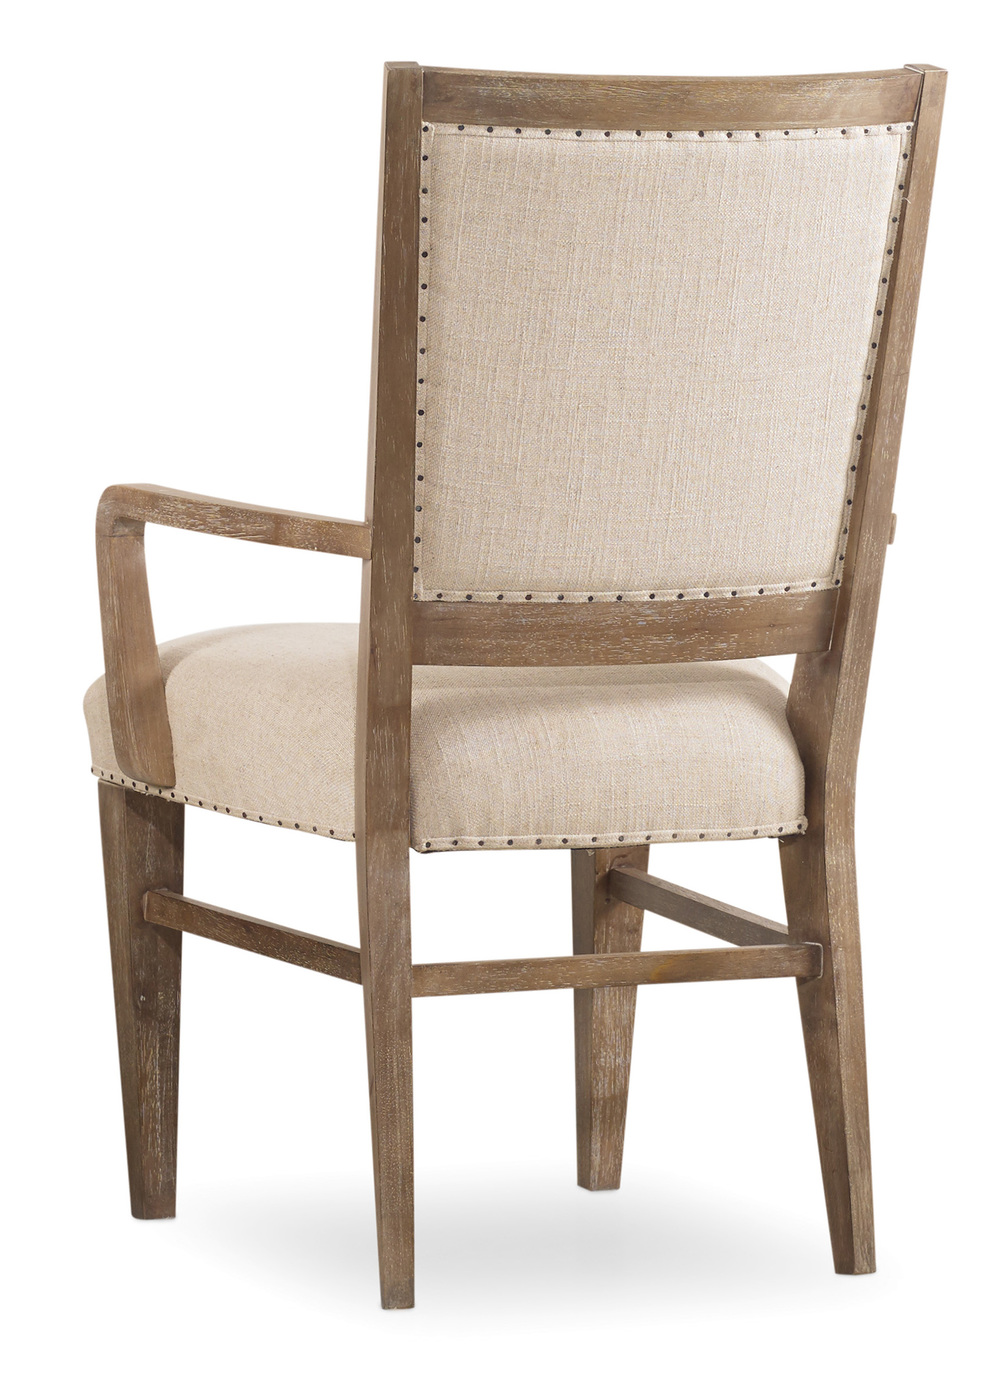 HOOKER FURNITURE CO - Studio 7H Stol Upholstered Arm Chair